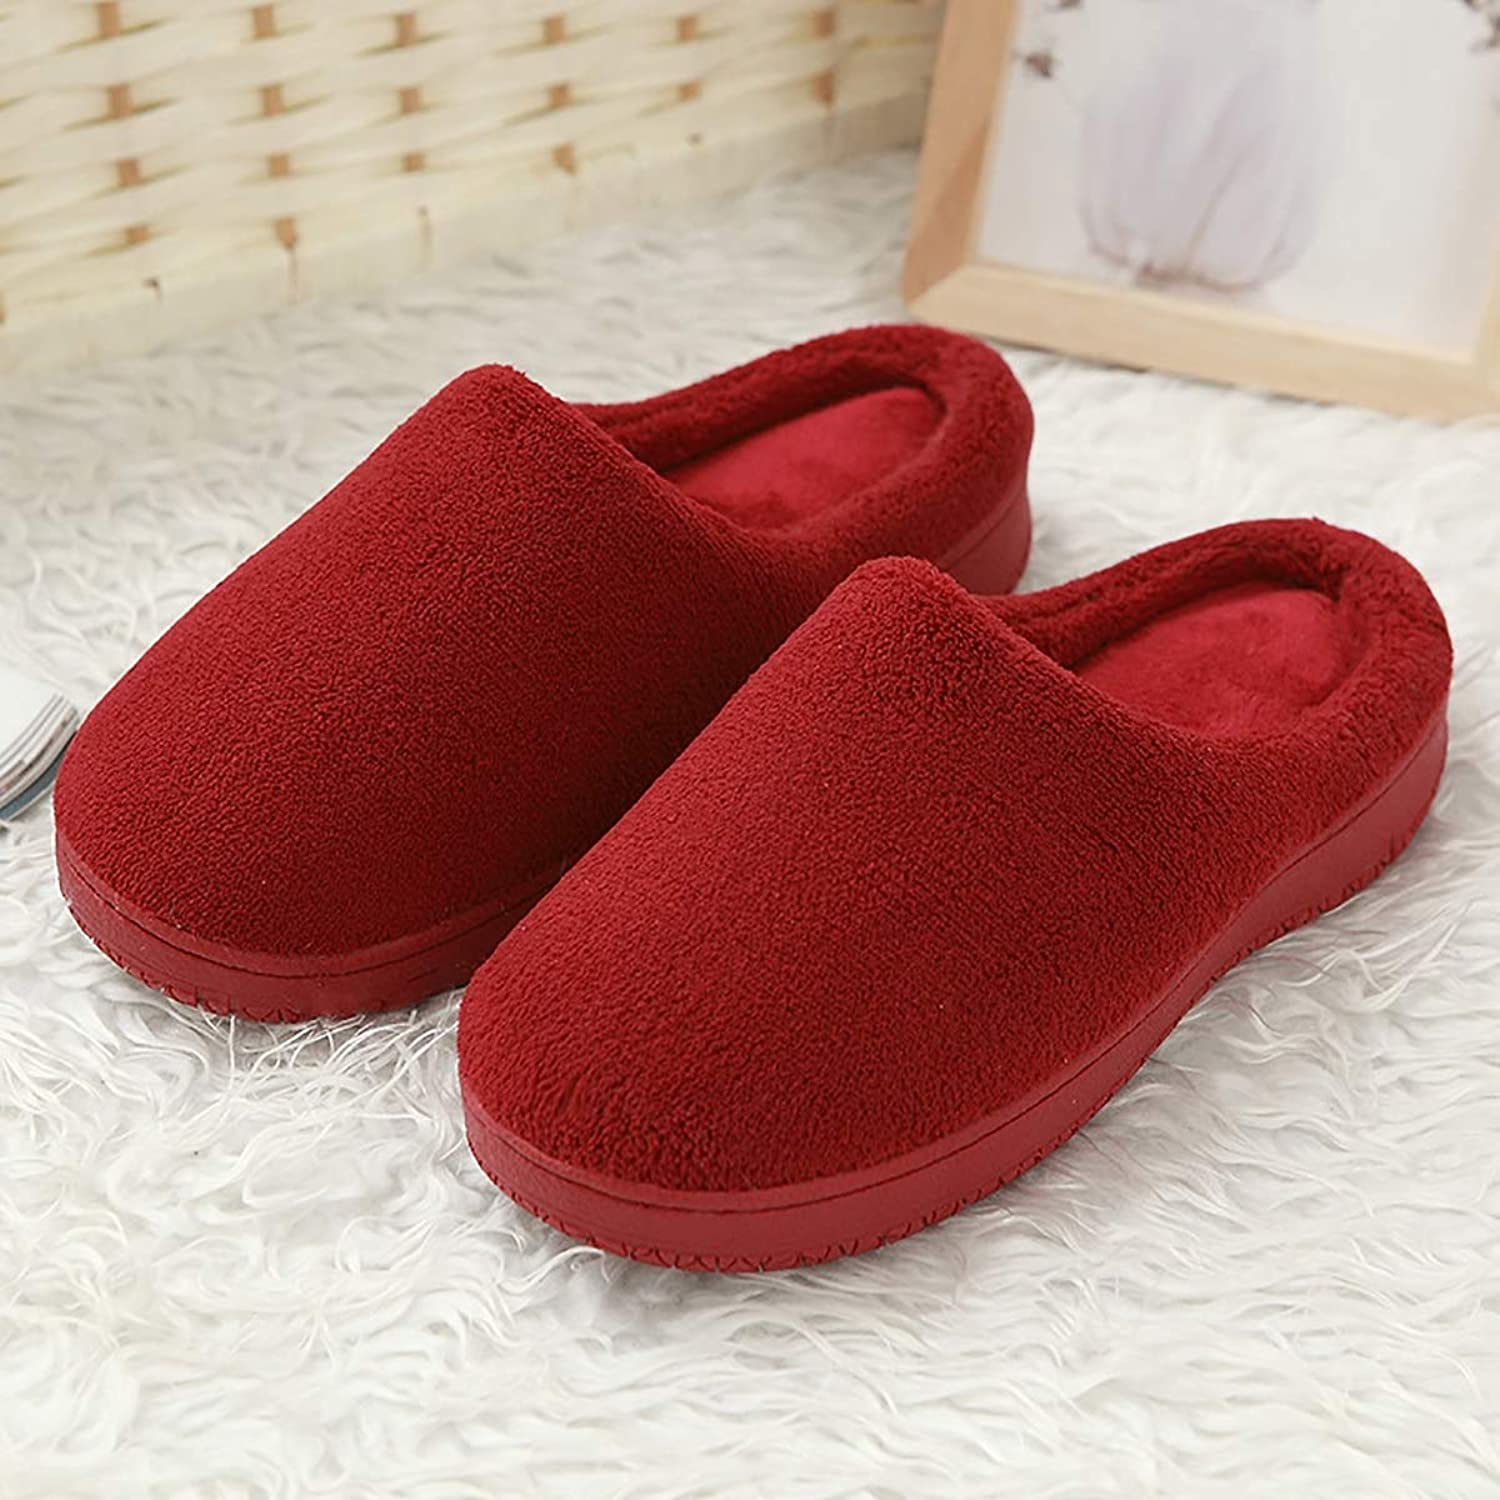 Memory Sponge Slippers Indoor Coral Velvet Cotton shoes Non-Slip Warm Washable Home shoes for Men and Women,Red,38 39